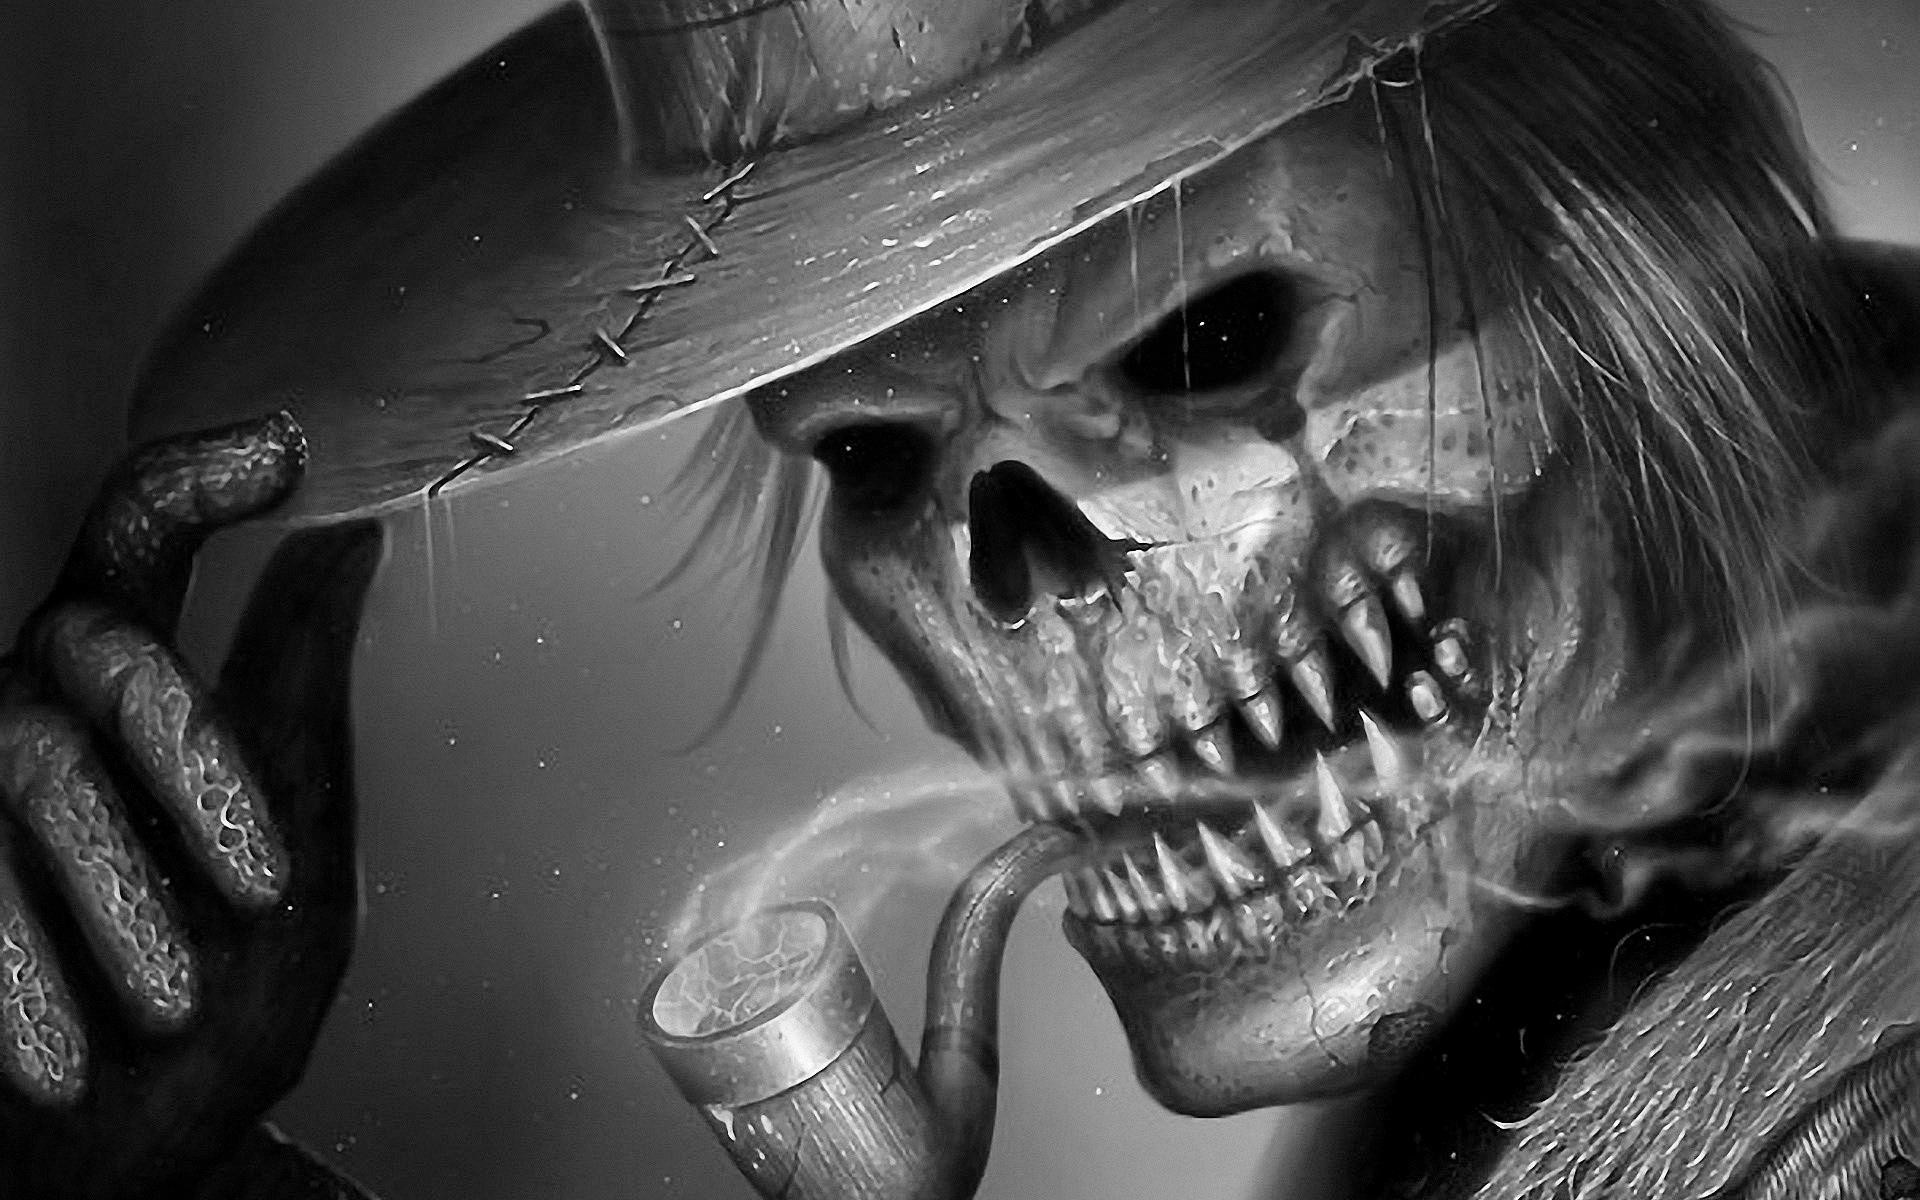 Res: 1920x1200, 1000+ images about Pics on Pinterest | Pirates, The grim and Wizard101